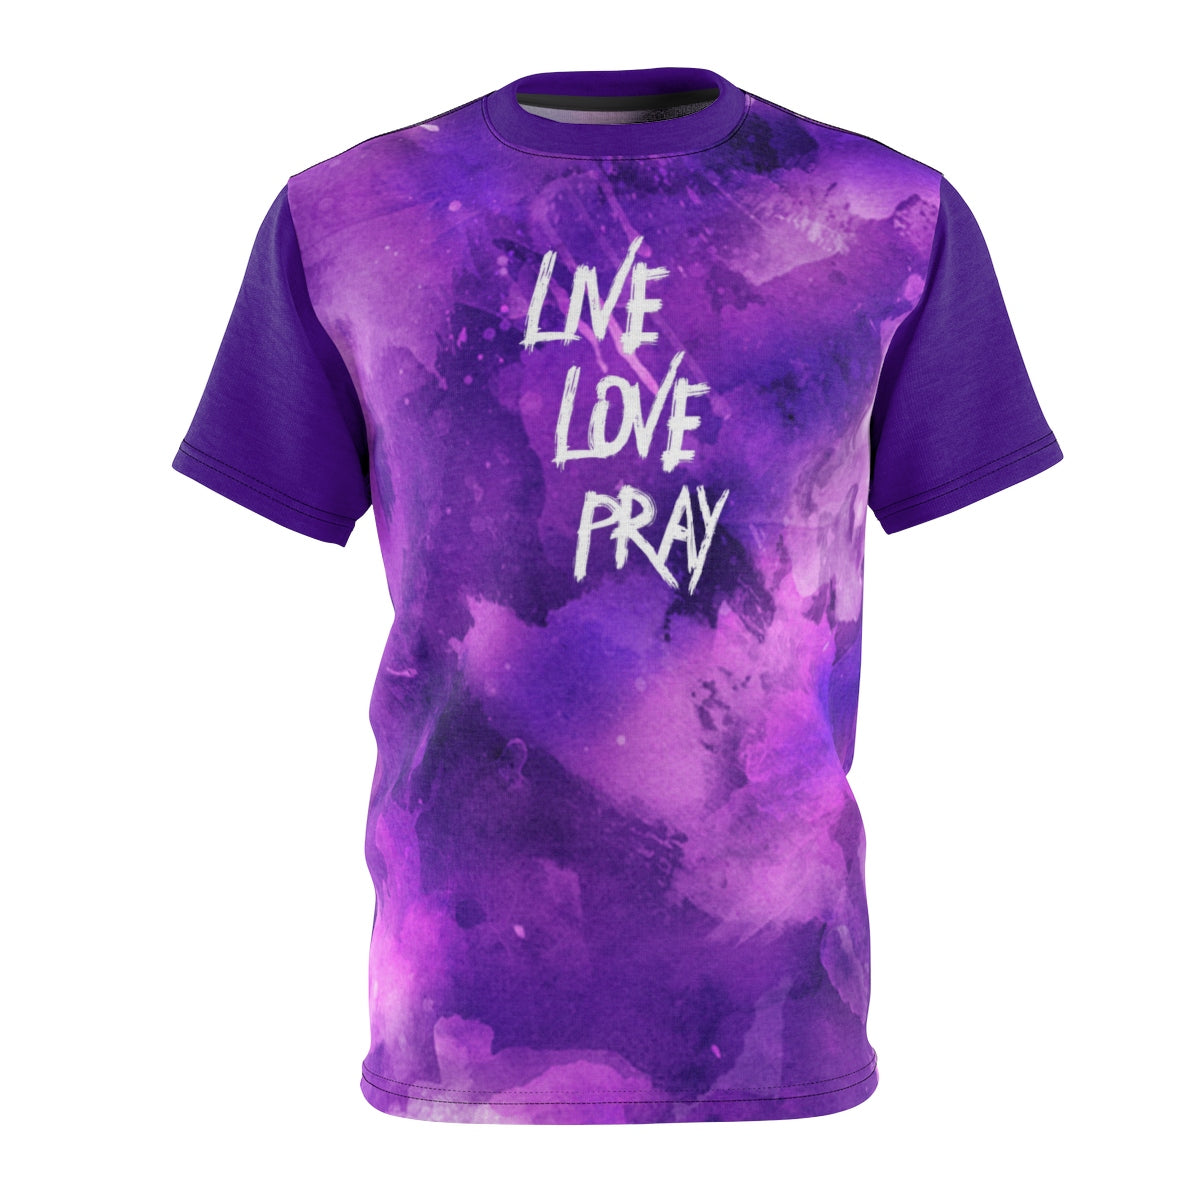 Inspirational Unisex T-shirt, Live Love Pray Tee, AOP Cut & Sew - skyrockettees